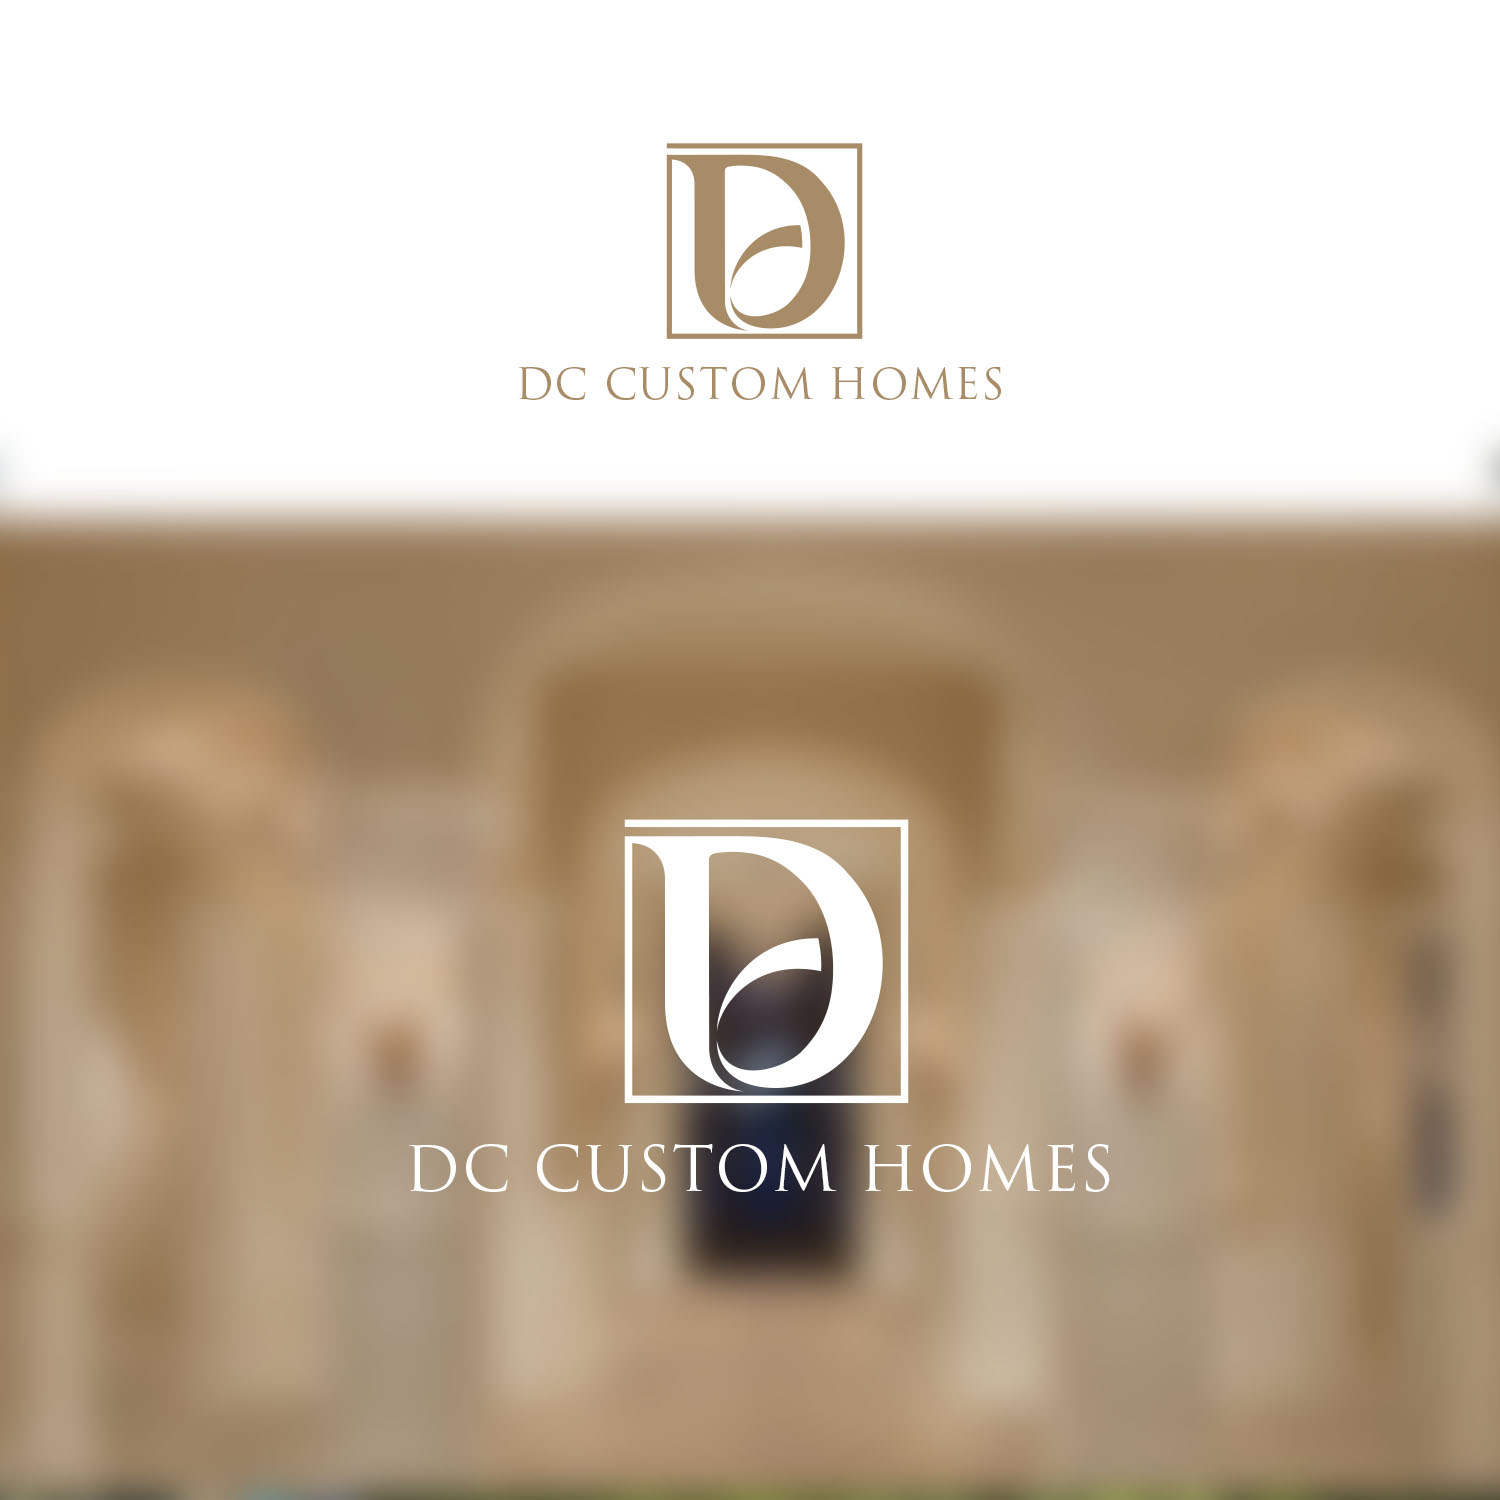 Logo Design by Private User - Entry No. 160 in the Logo Design Contest Creative Logo Design for DC Custom Homes.